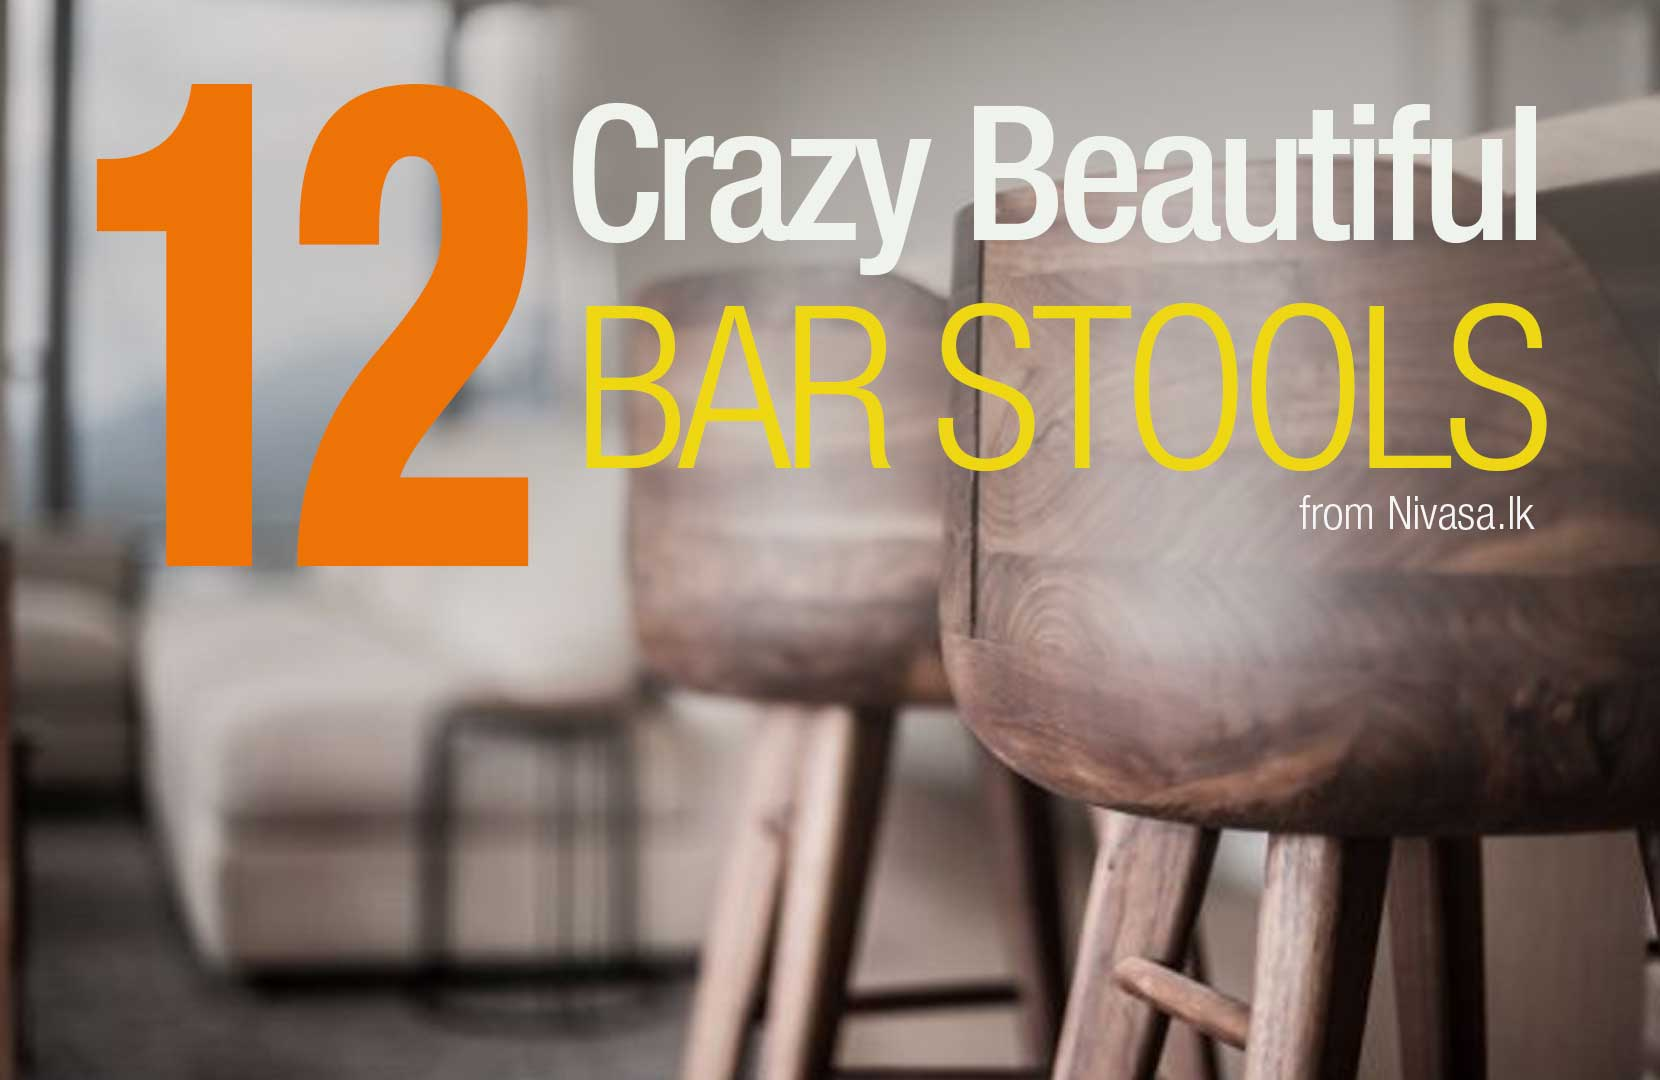 12 Great Bar Stool Ideas and how to place them